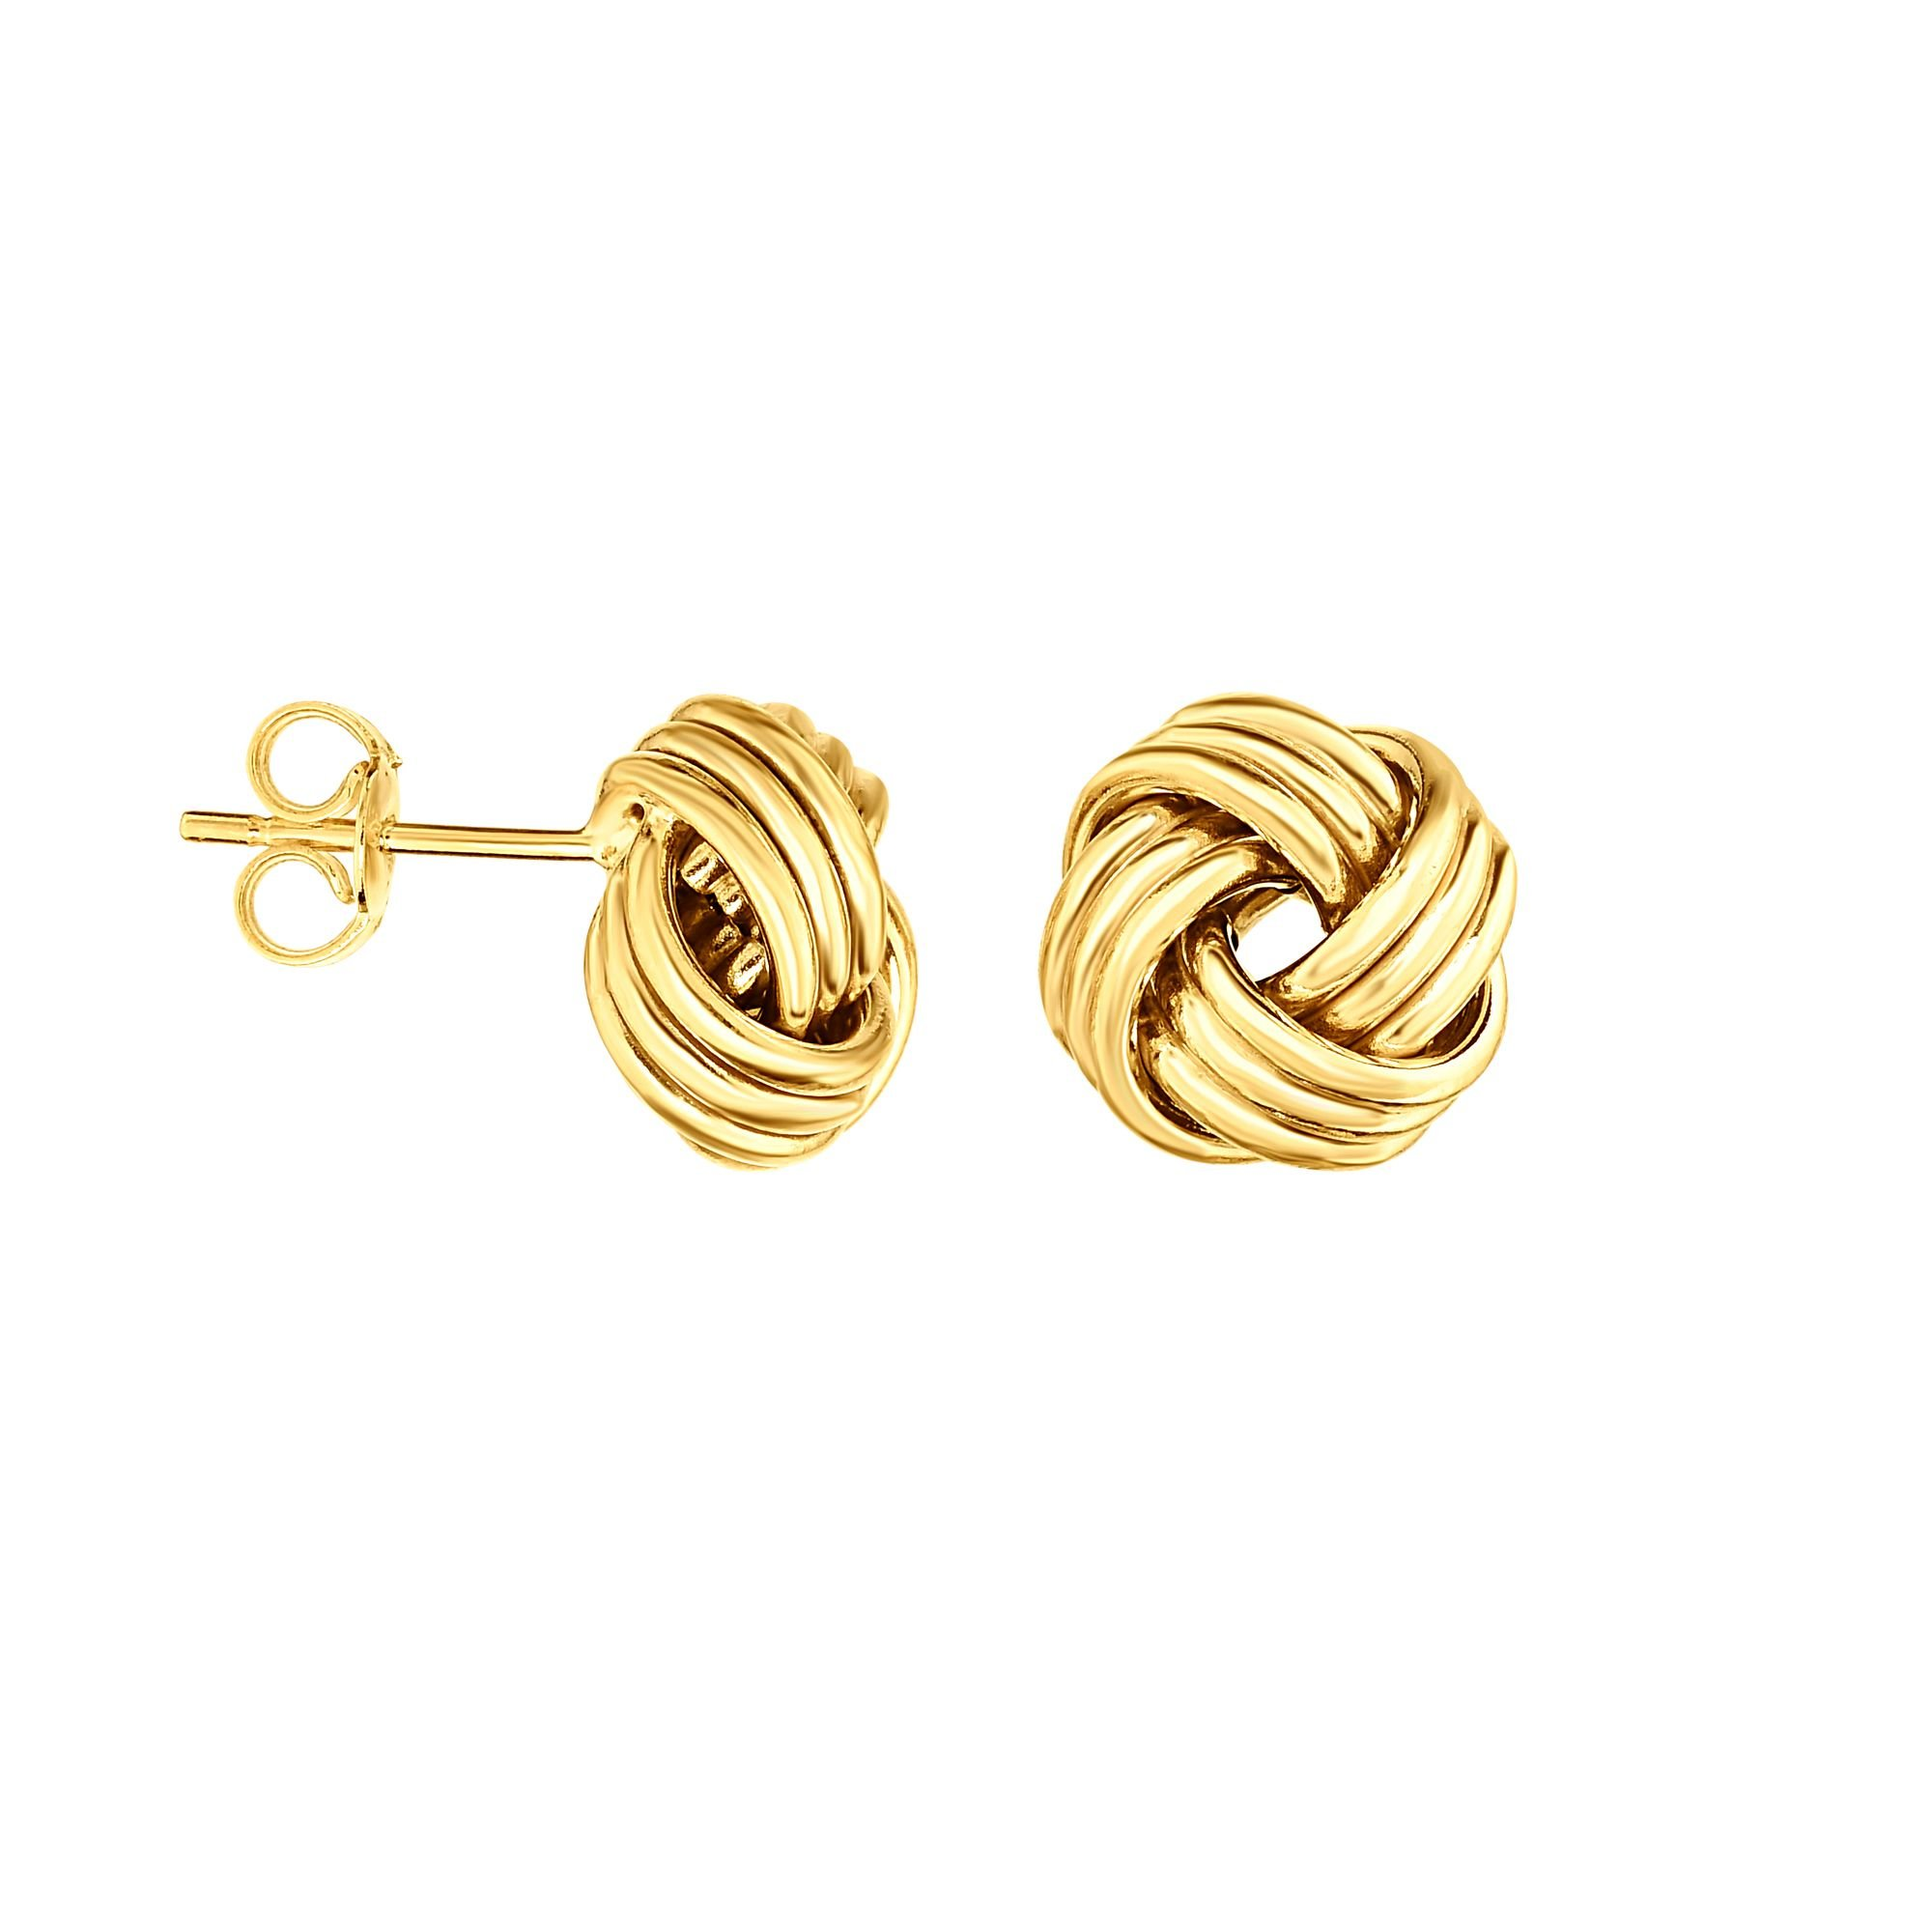 Aleksa Ladies 14K Gold Yellow Finish Round Love Knot Earrings with Push Back Clasp